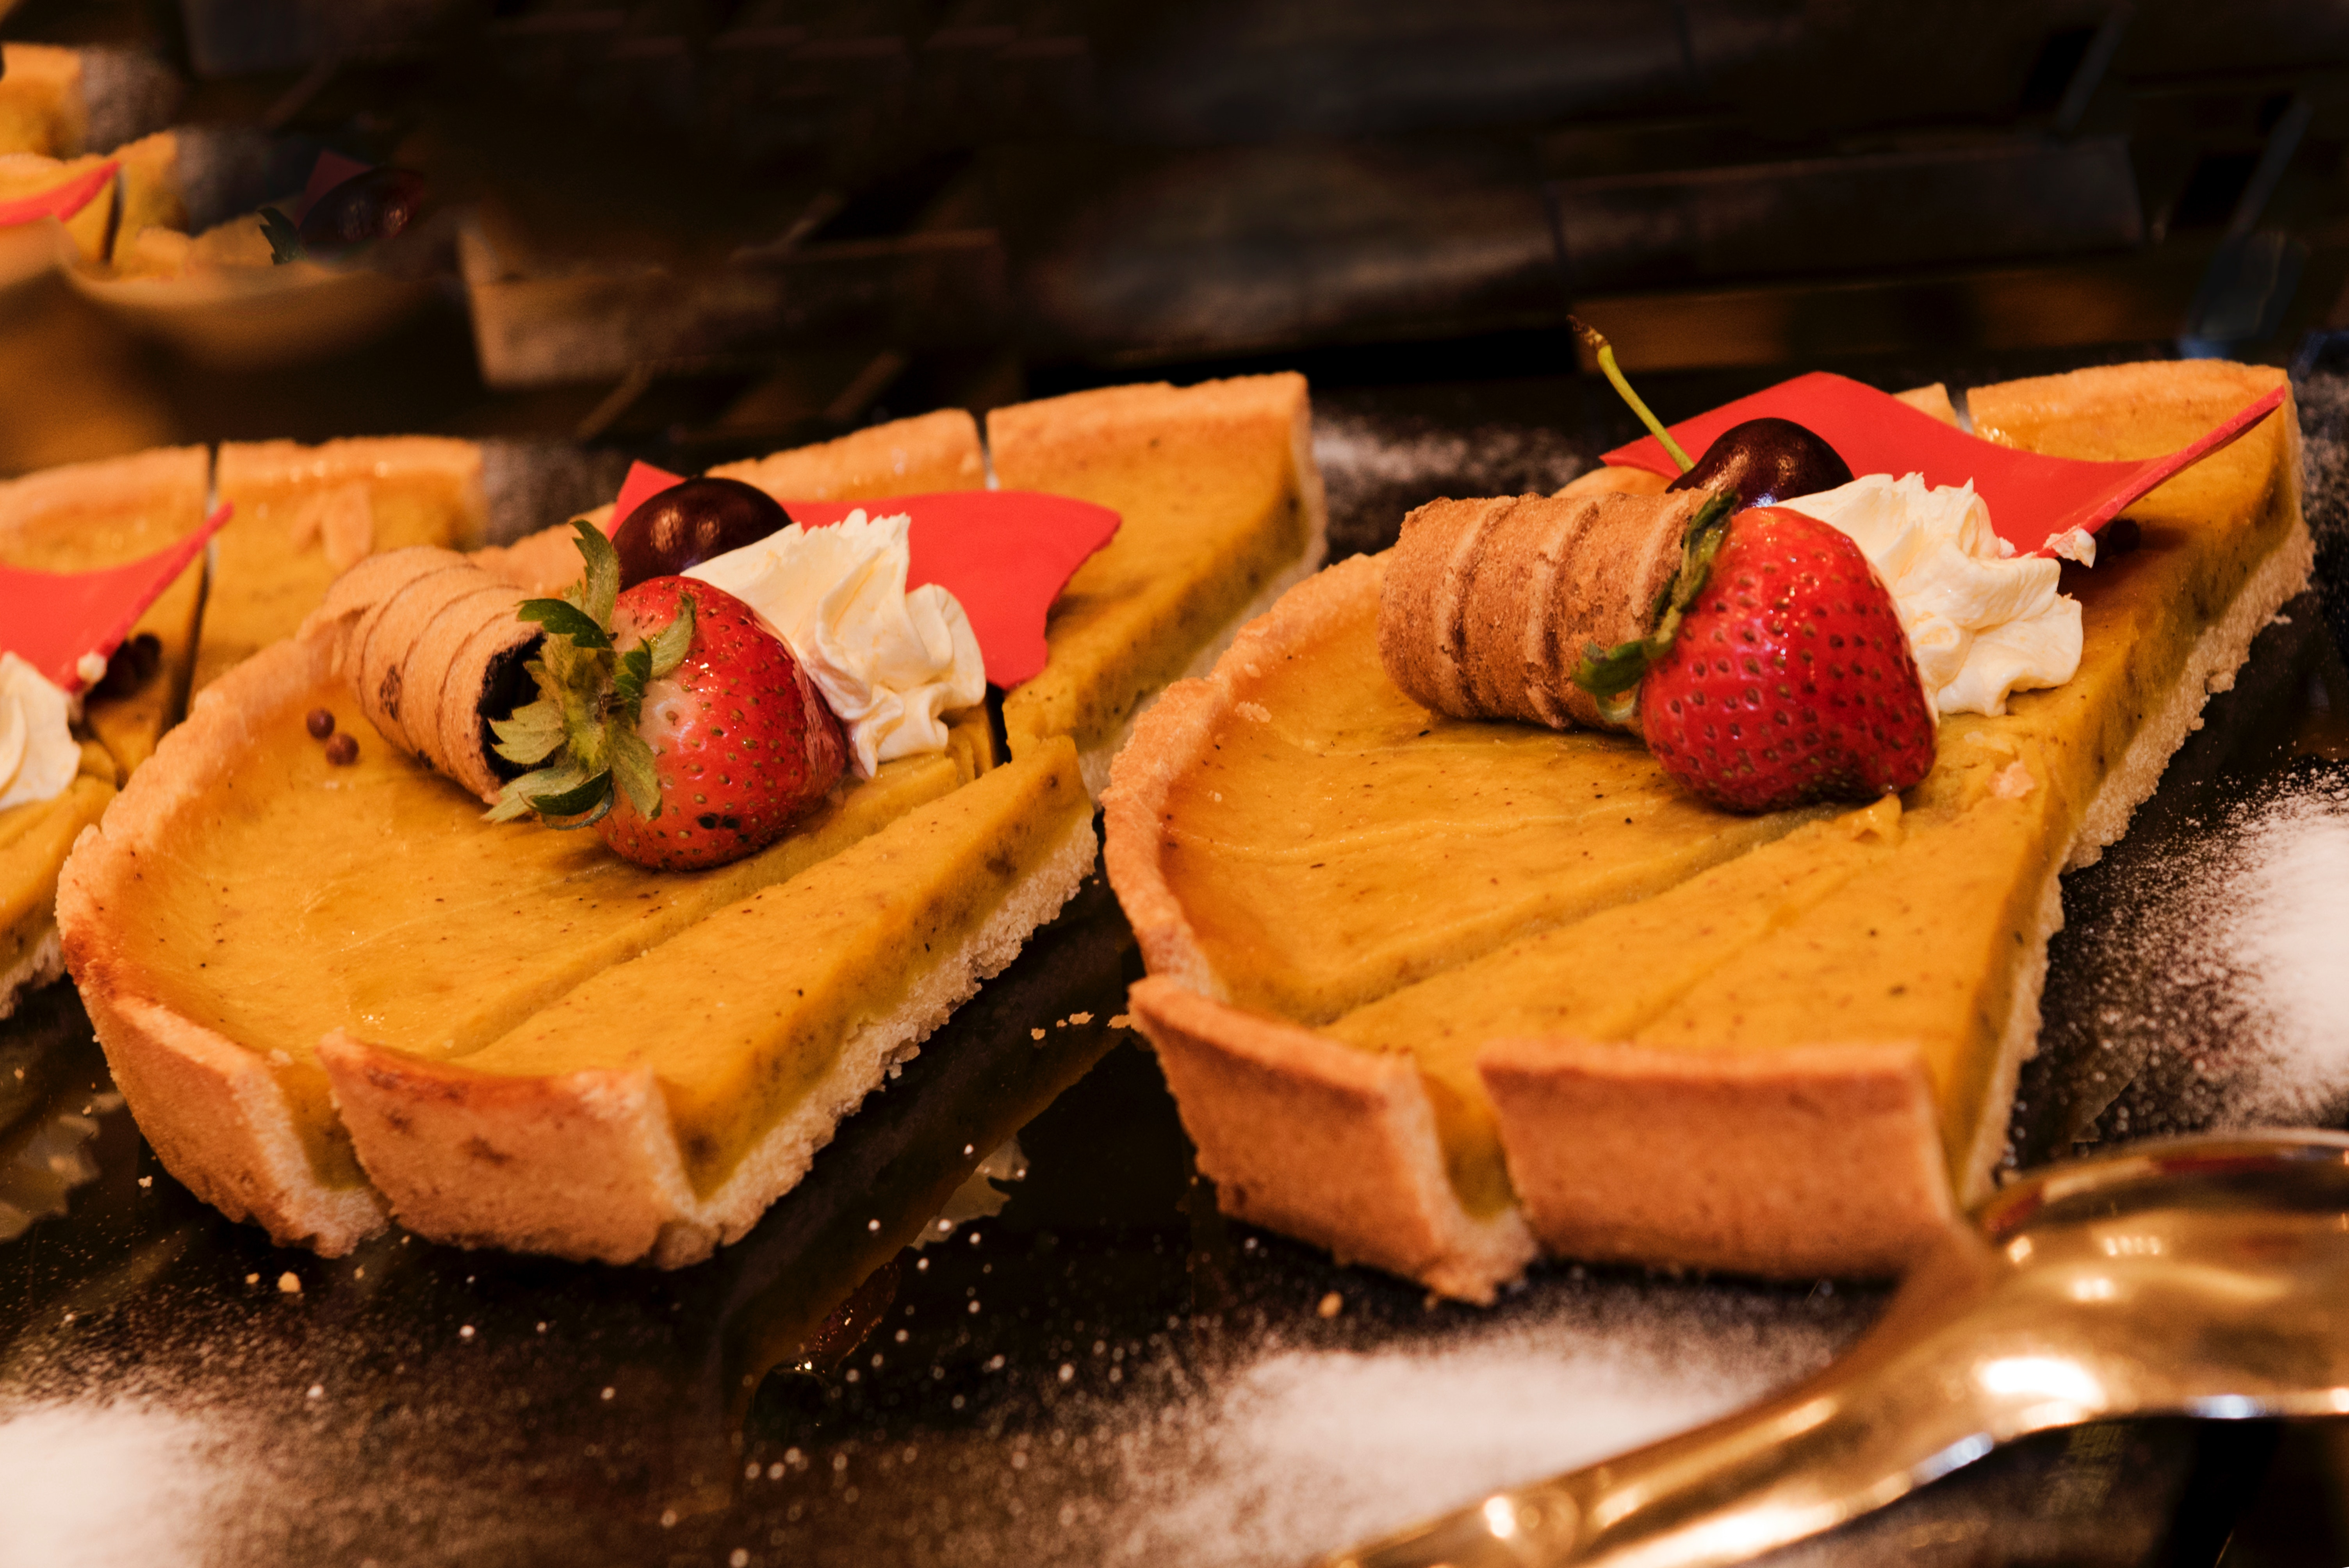 Pie With Strawberries, Baked, Indulgence, Table, Sweet, HQ Photo